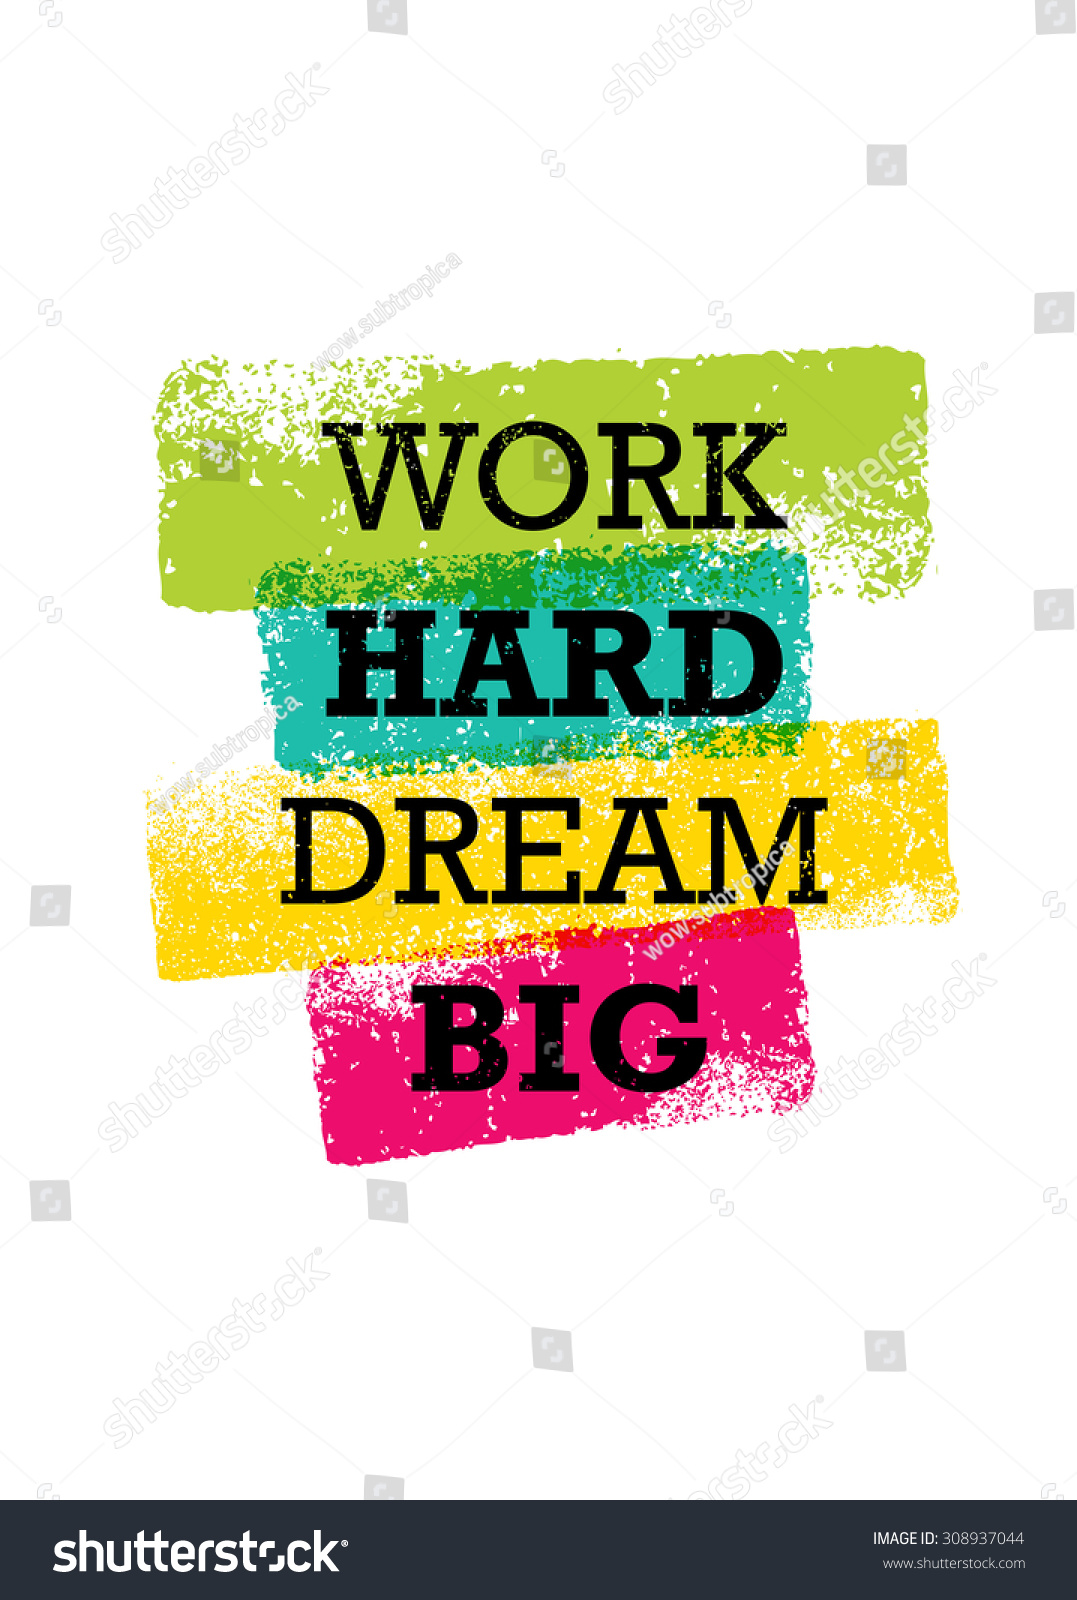 work hard dream big creative motivation stock vector 308937044 shutterstock. Black Bedroom Furniture Sets. Home Design Ideas